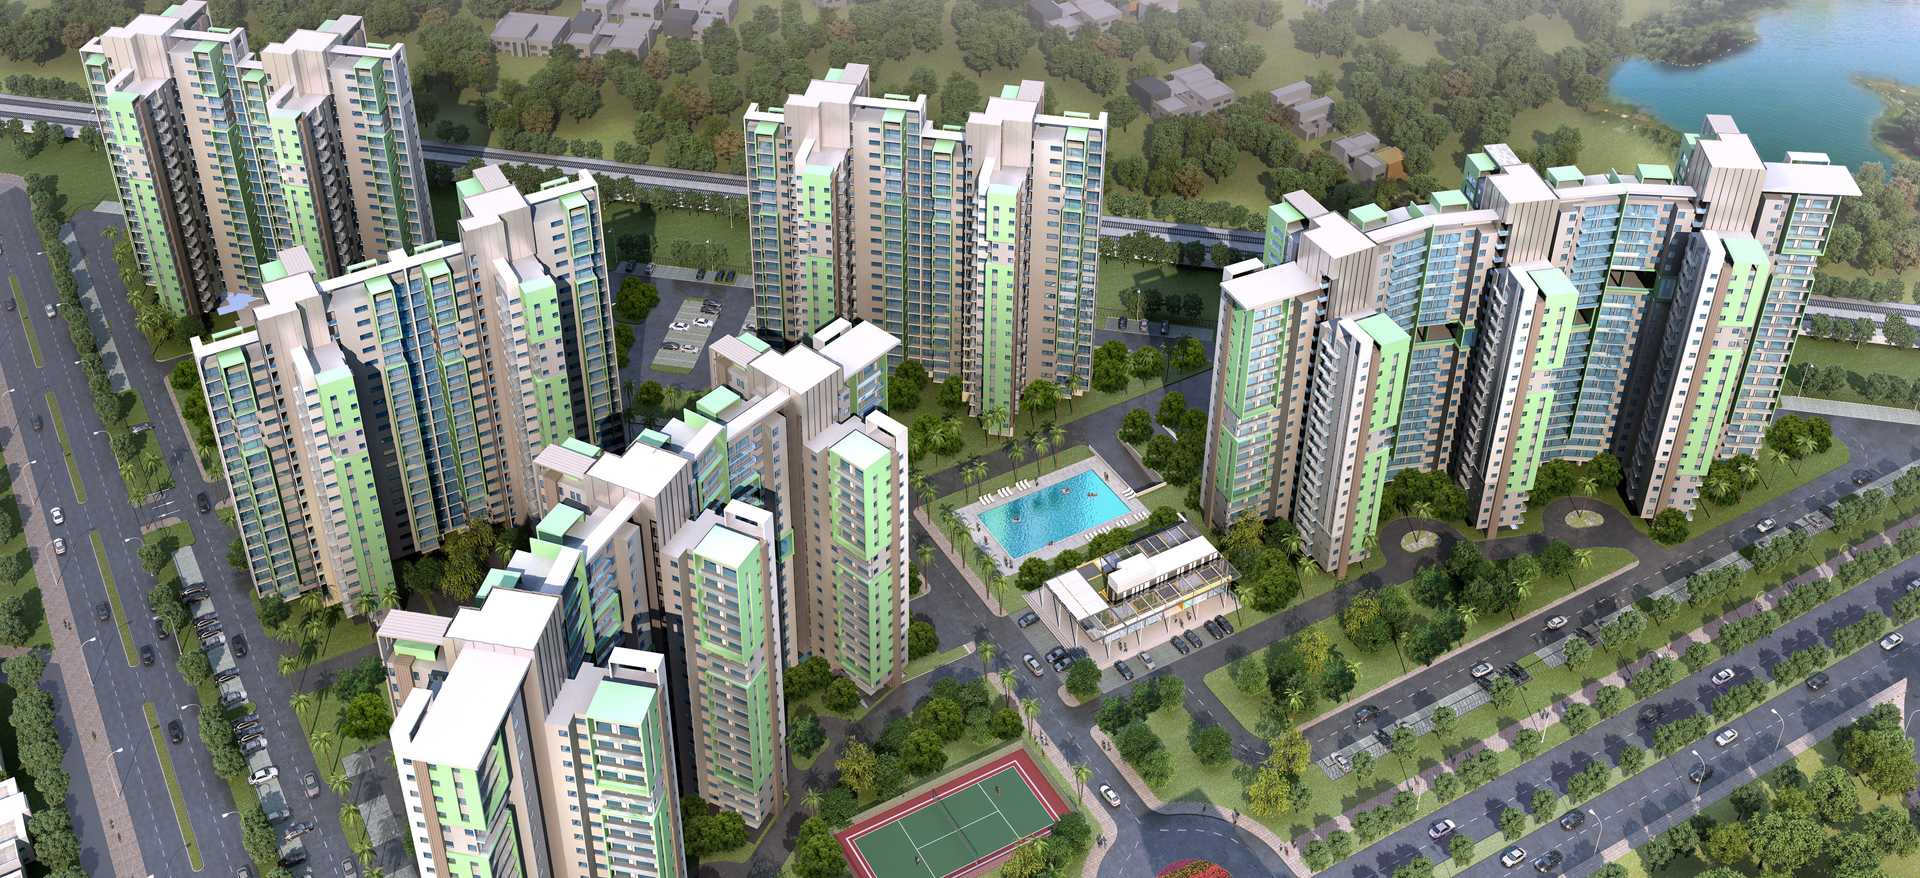 Sector M Group Housing Development, Uttar Pradesh, India